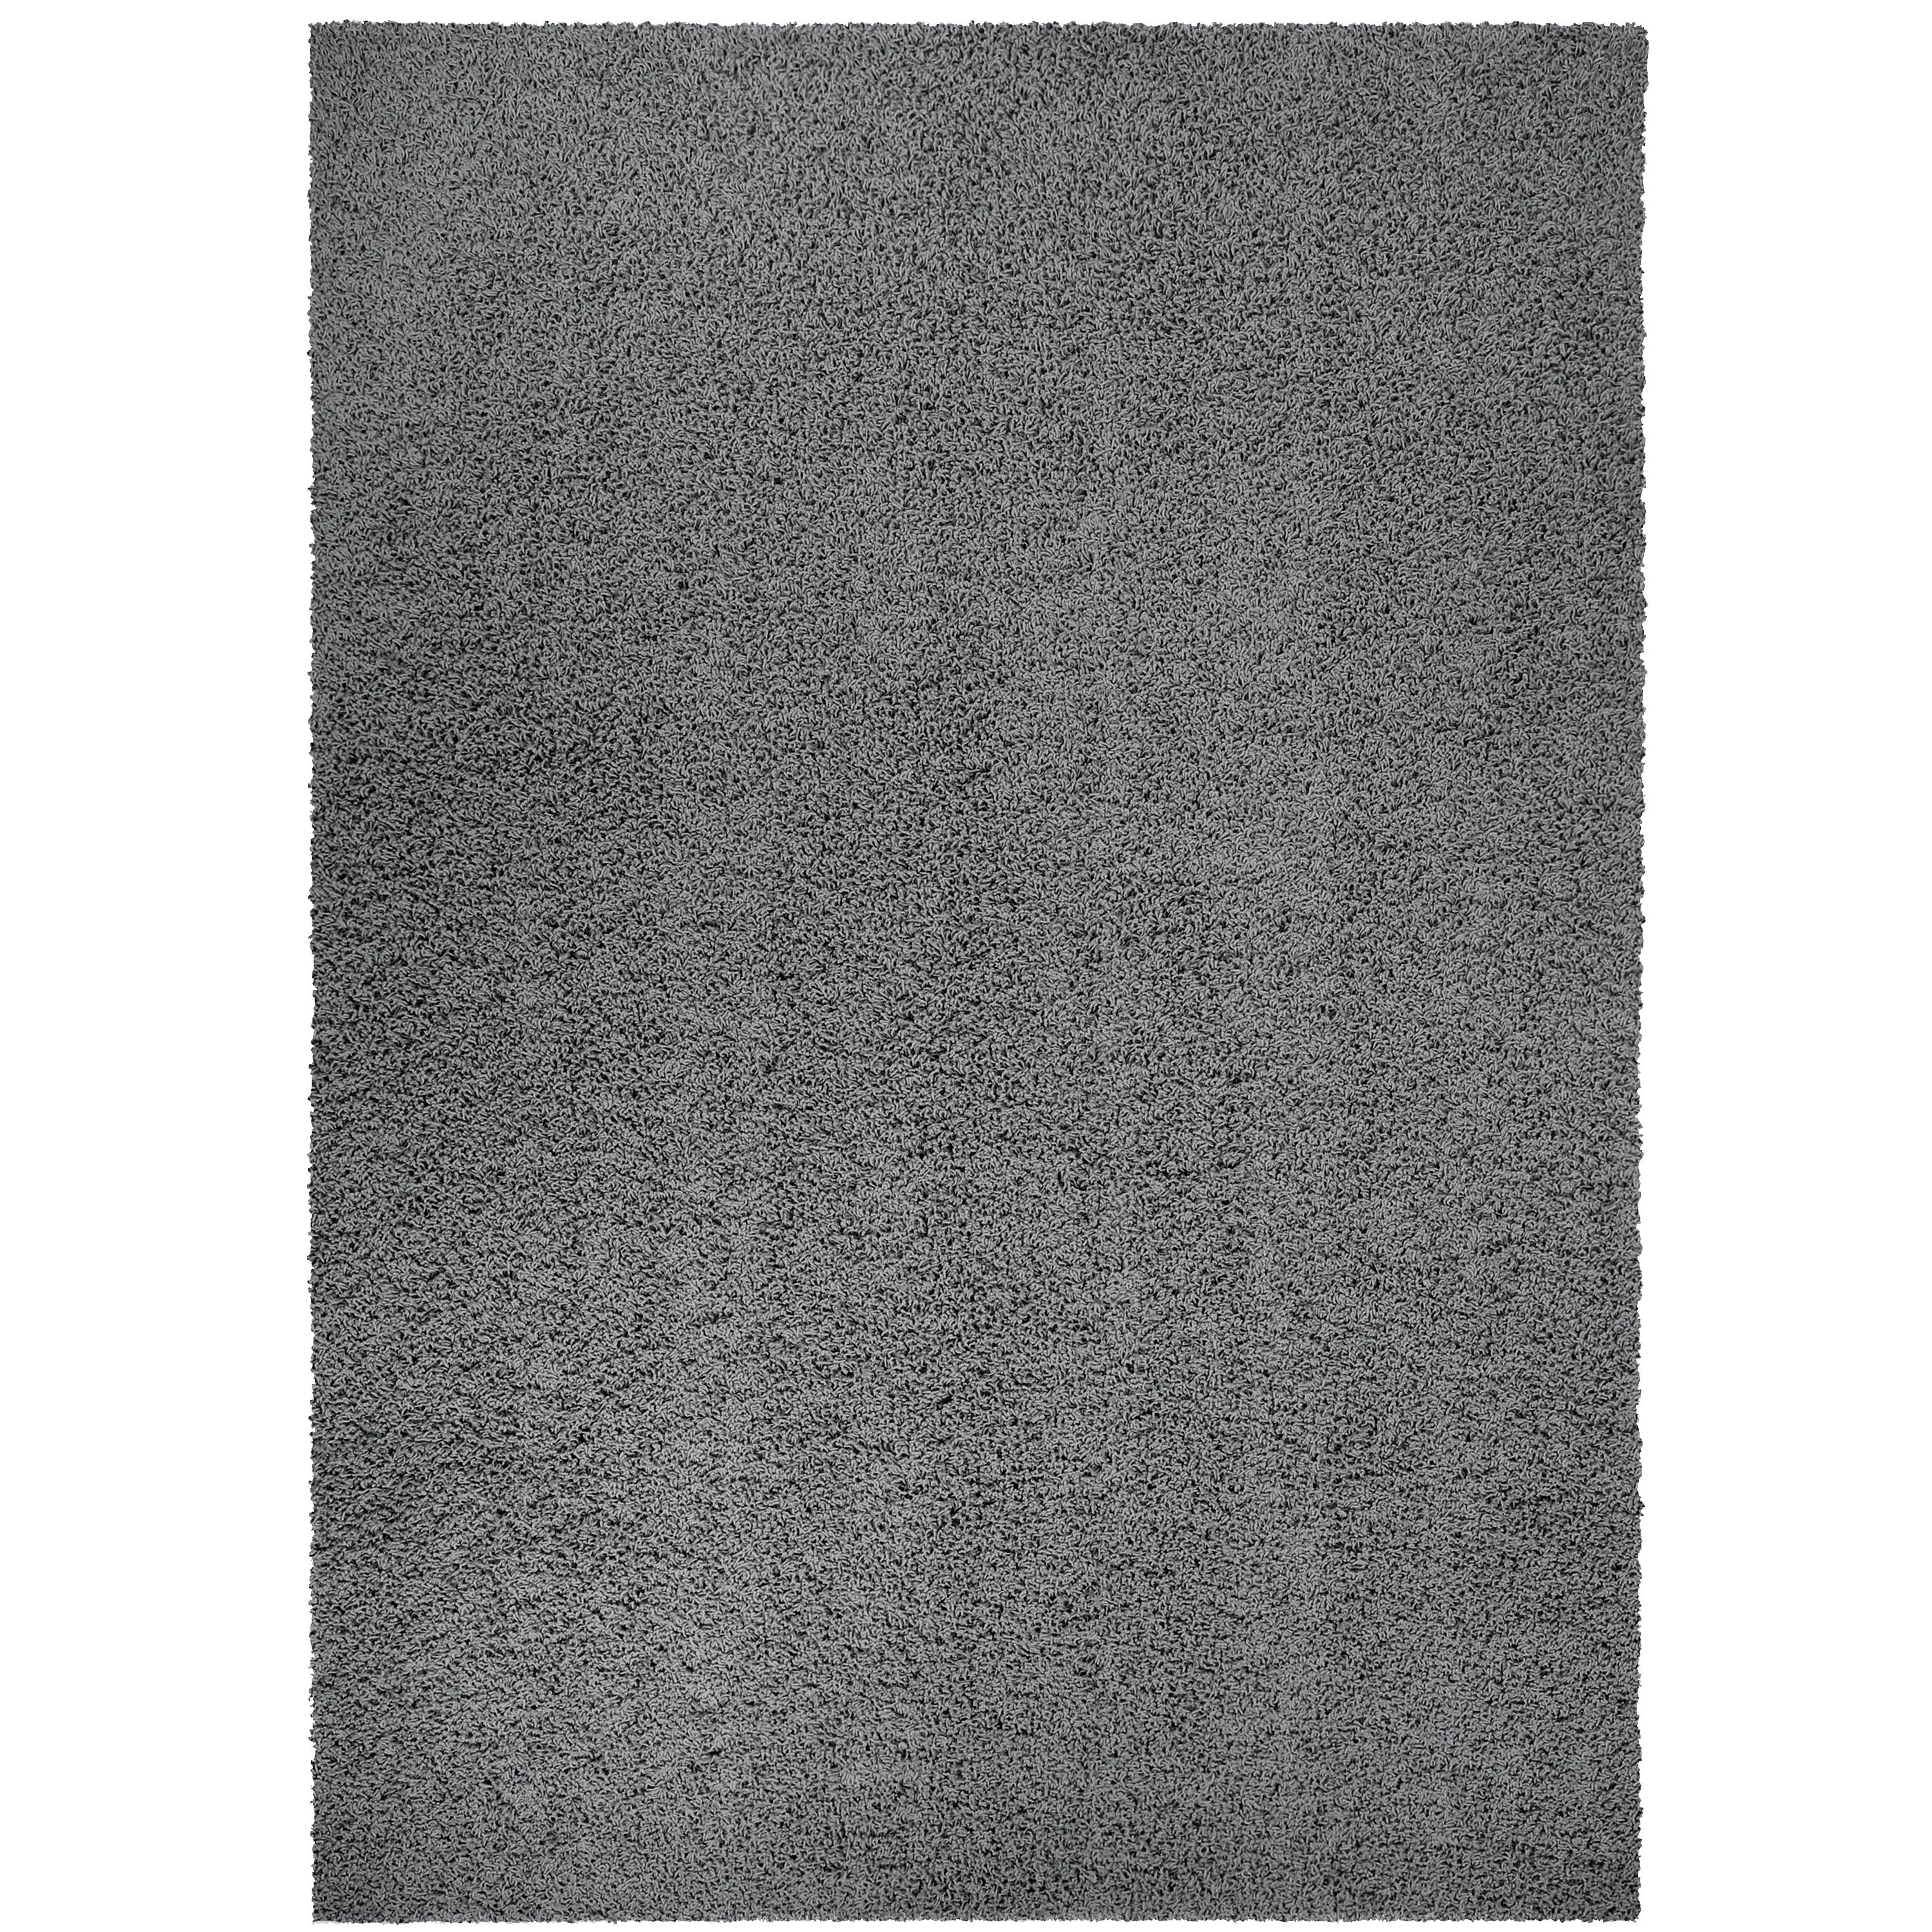 Mainstays Olefin Shag Area Rug and Runner, Multiple Sizes and Colors